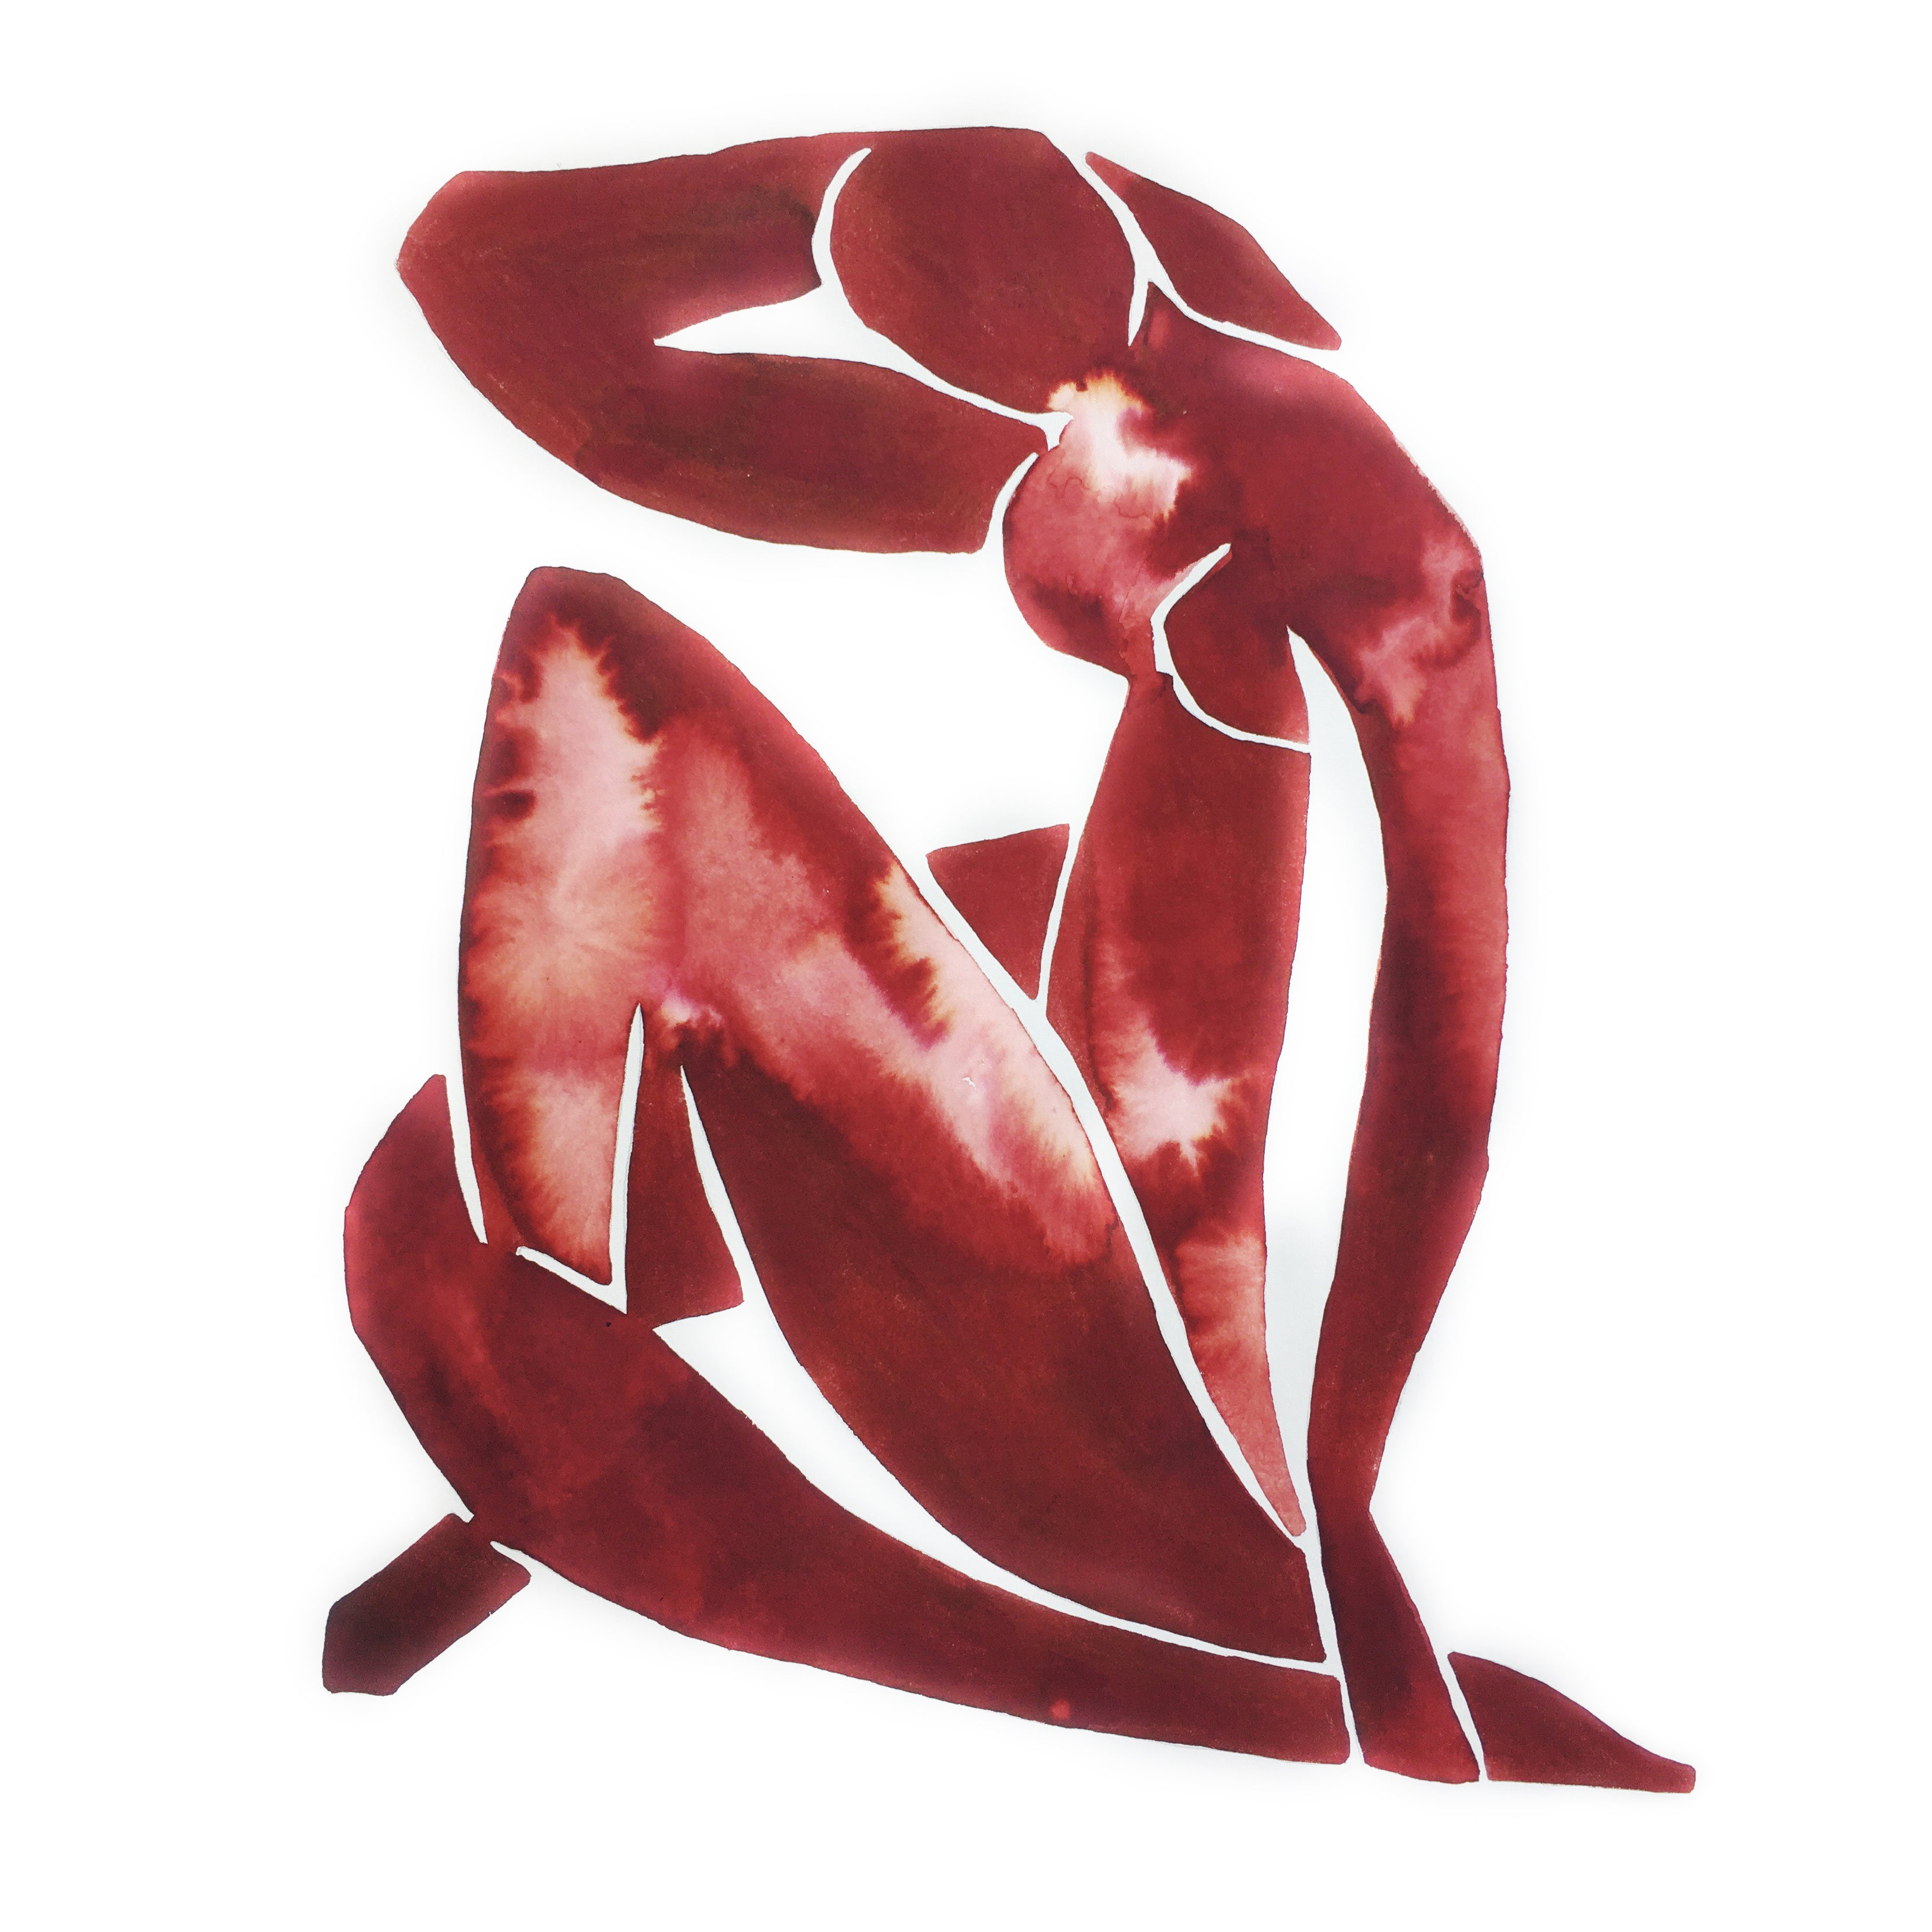 Matisse's Blue Nude Wearing Oxblood Red